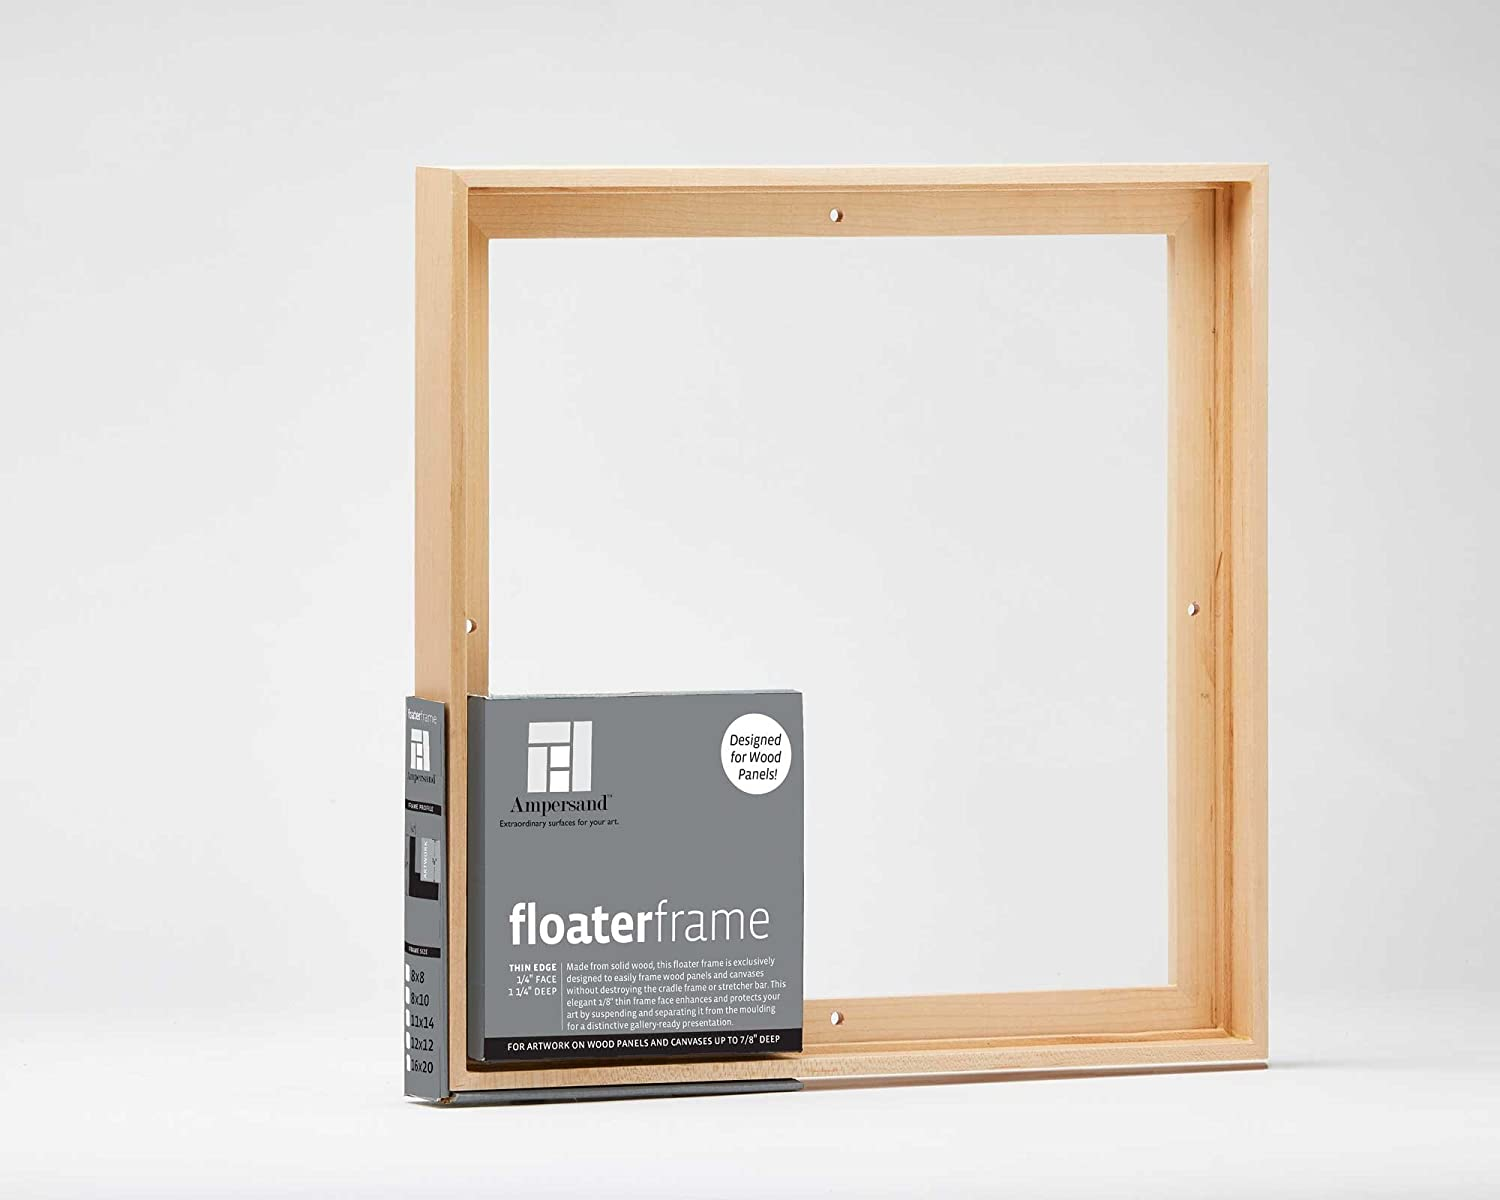 Amazon.com: Ampersand Floaterframe for Wood Panels, 7/8 Inch Depth ...